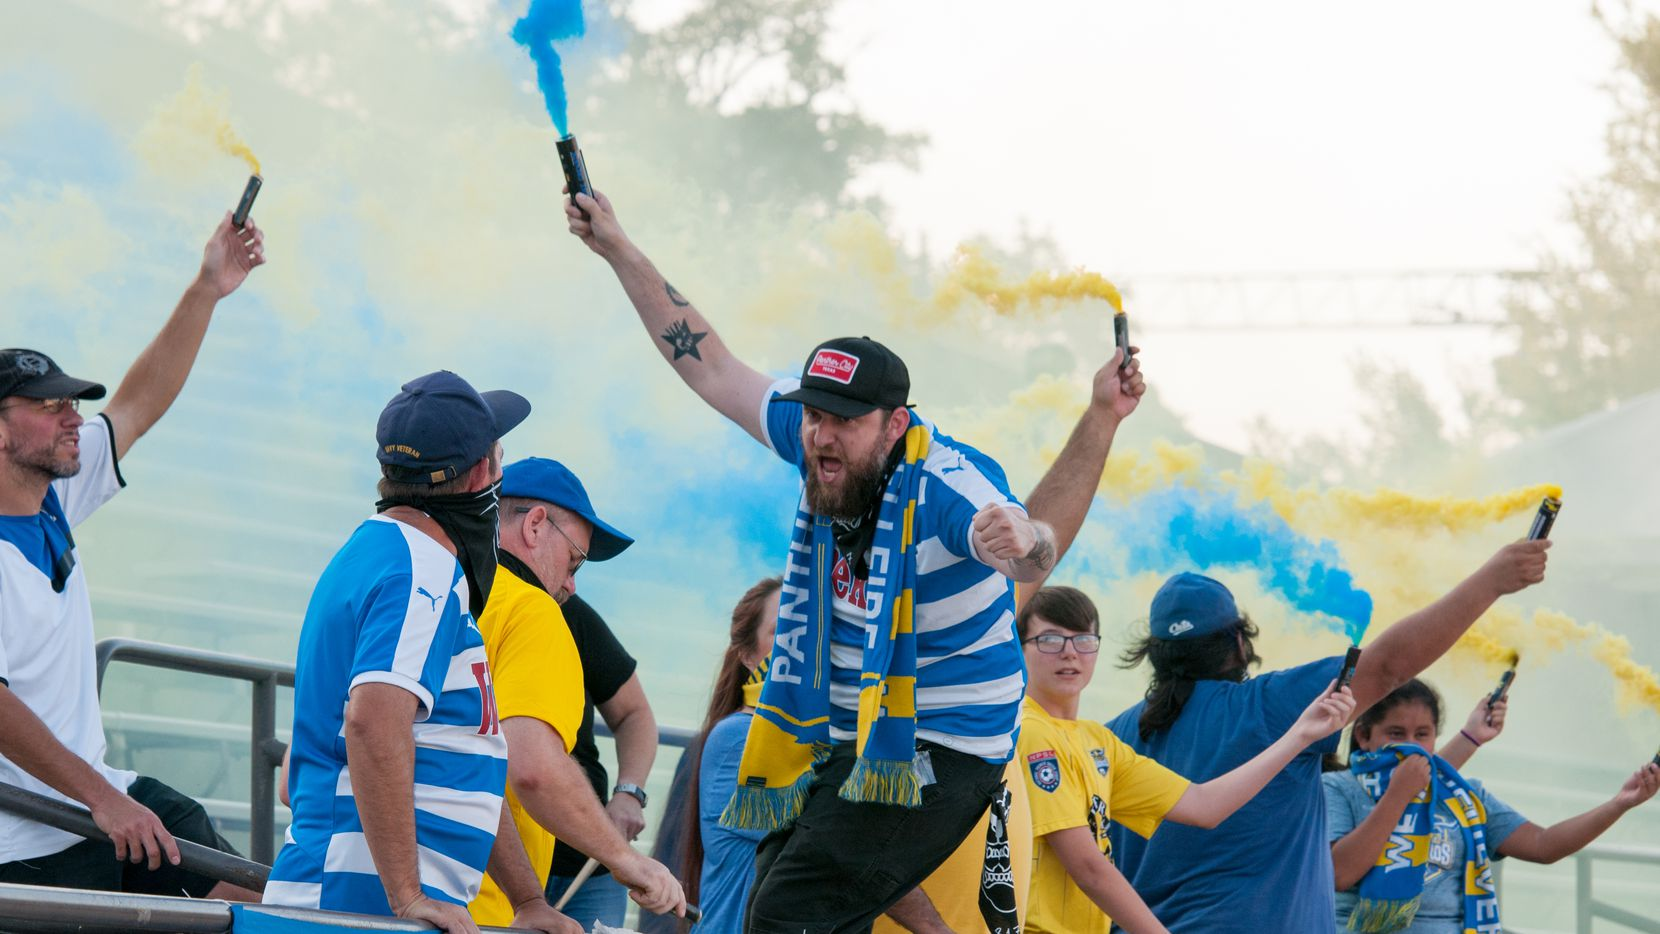 Vaqueros' supporters club Panther City Hellfire in action.